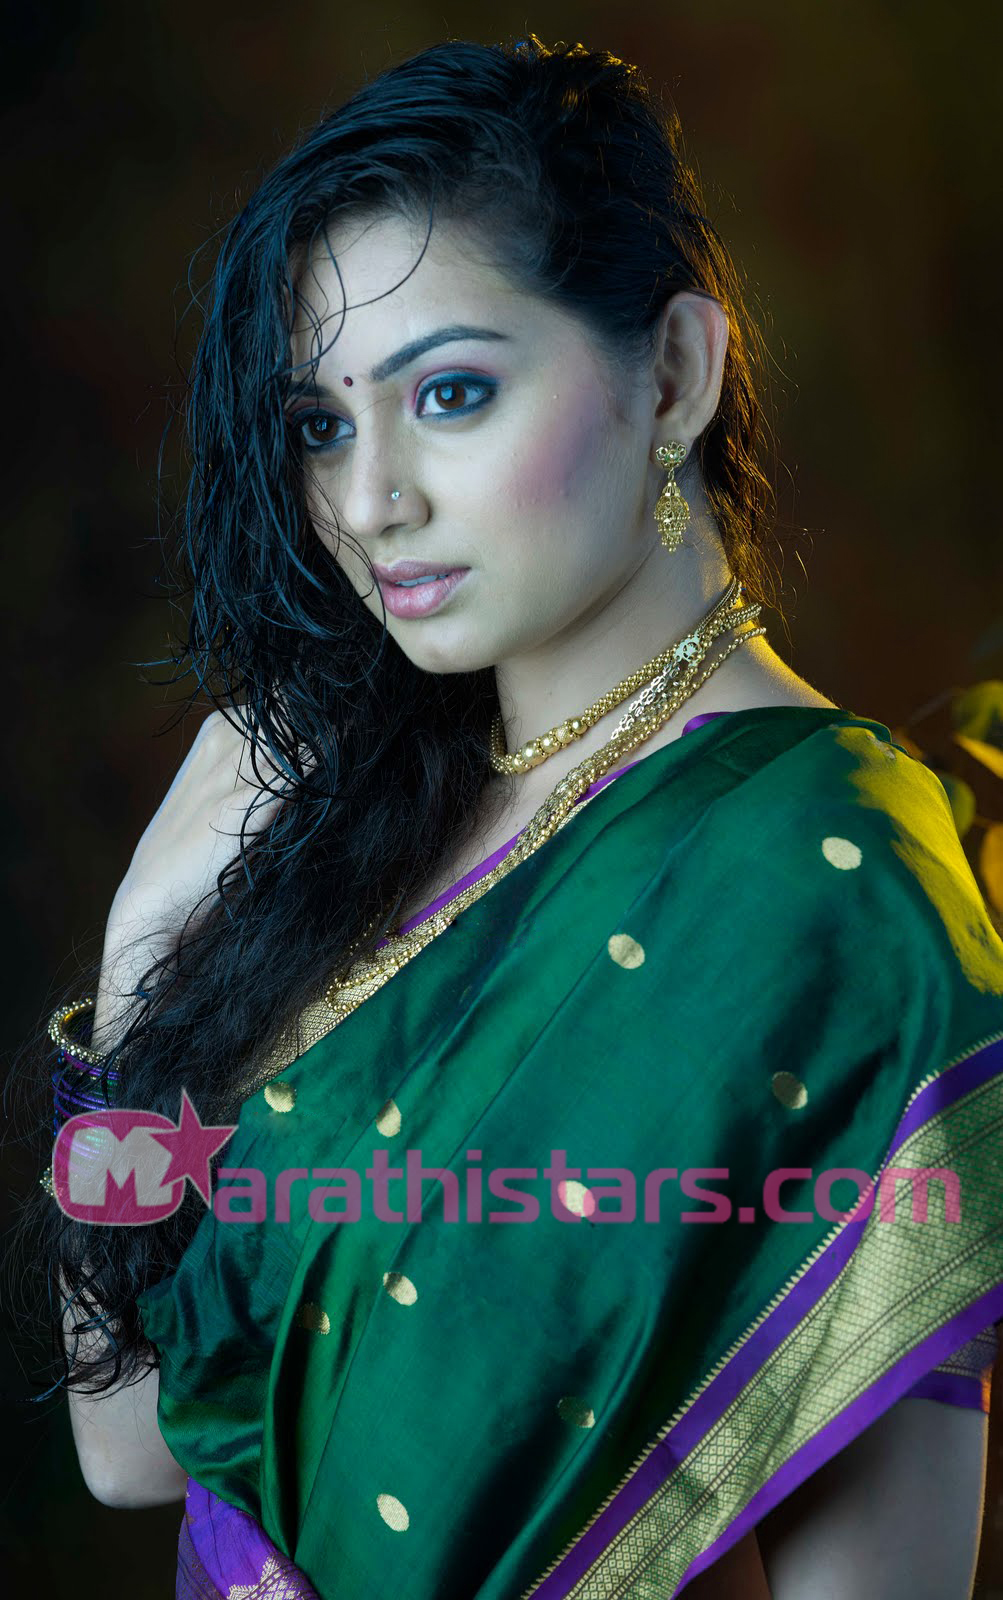 Shruti Marathe Marathi Actress Photos & Biography | Marathi Stars ...